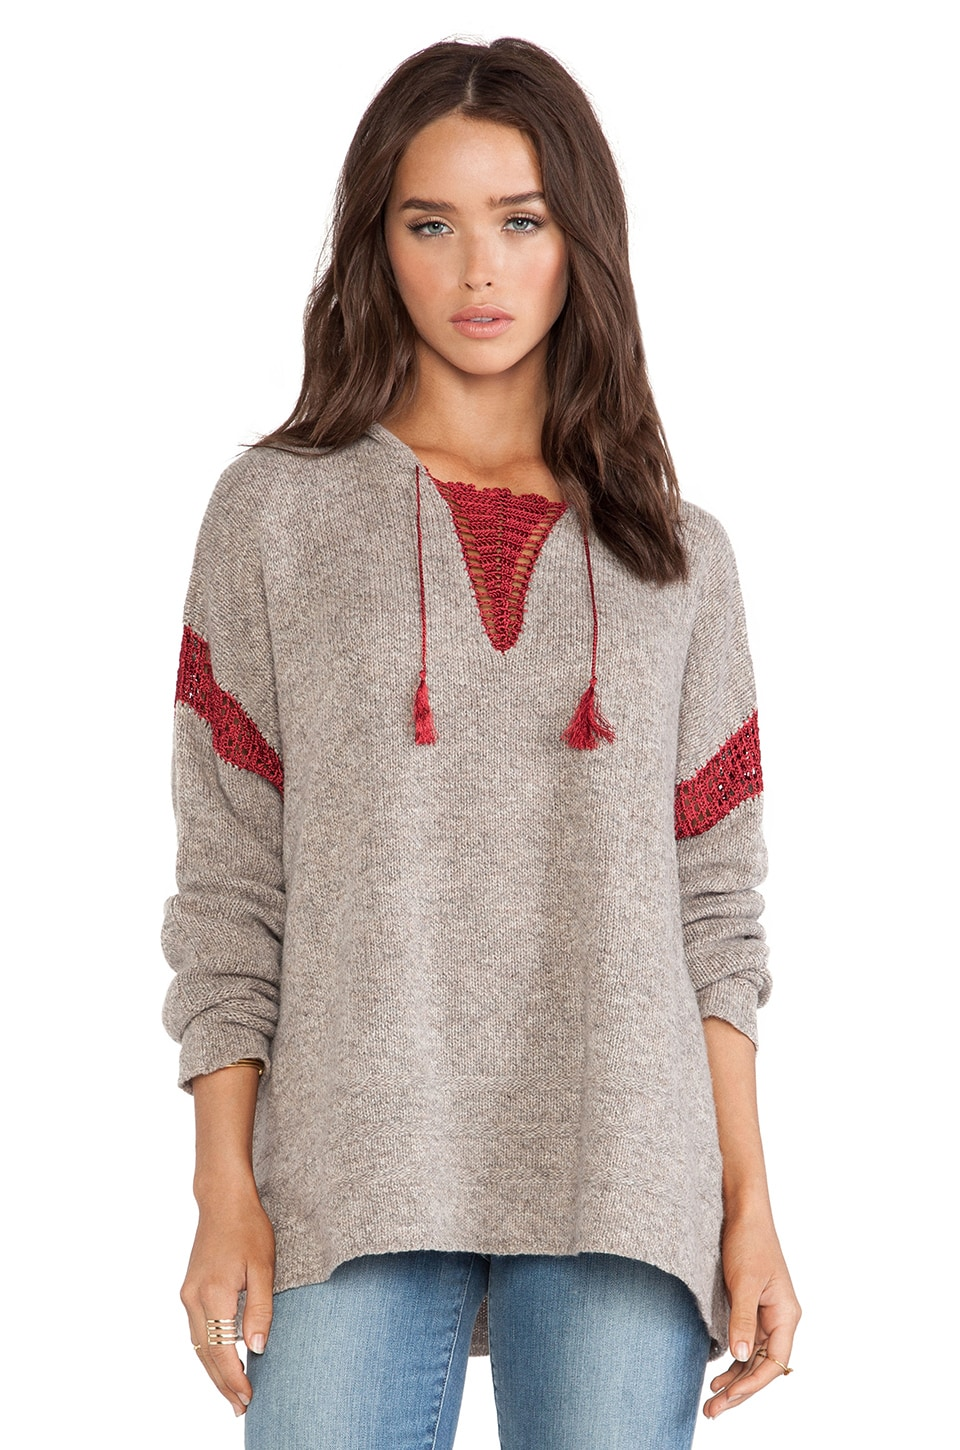 Linear B. Tulum Hooded Sweater in Sparrow